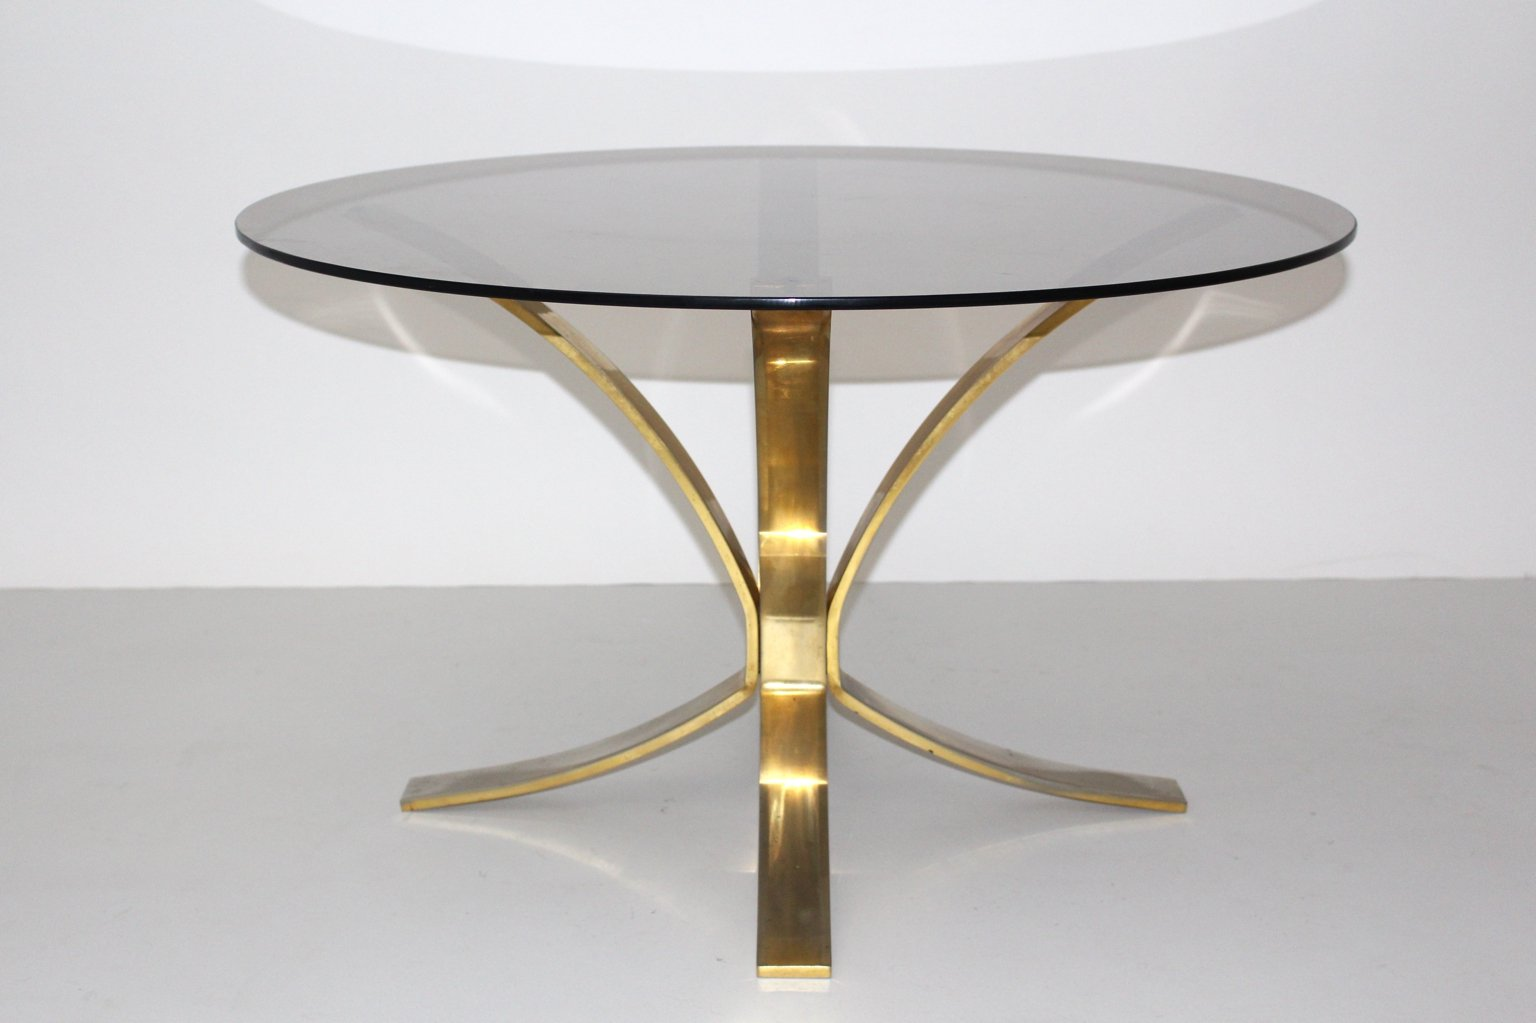 Round coffee table by roger sprunger for dunbar furniture for Round coffee tables for sale